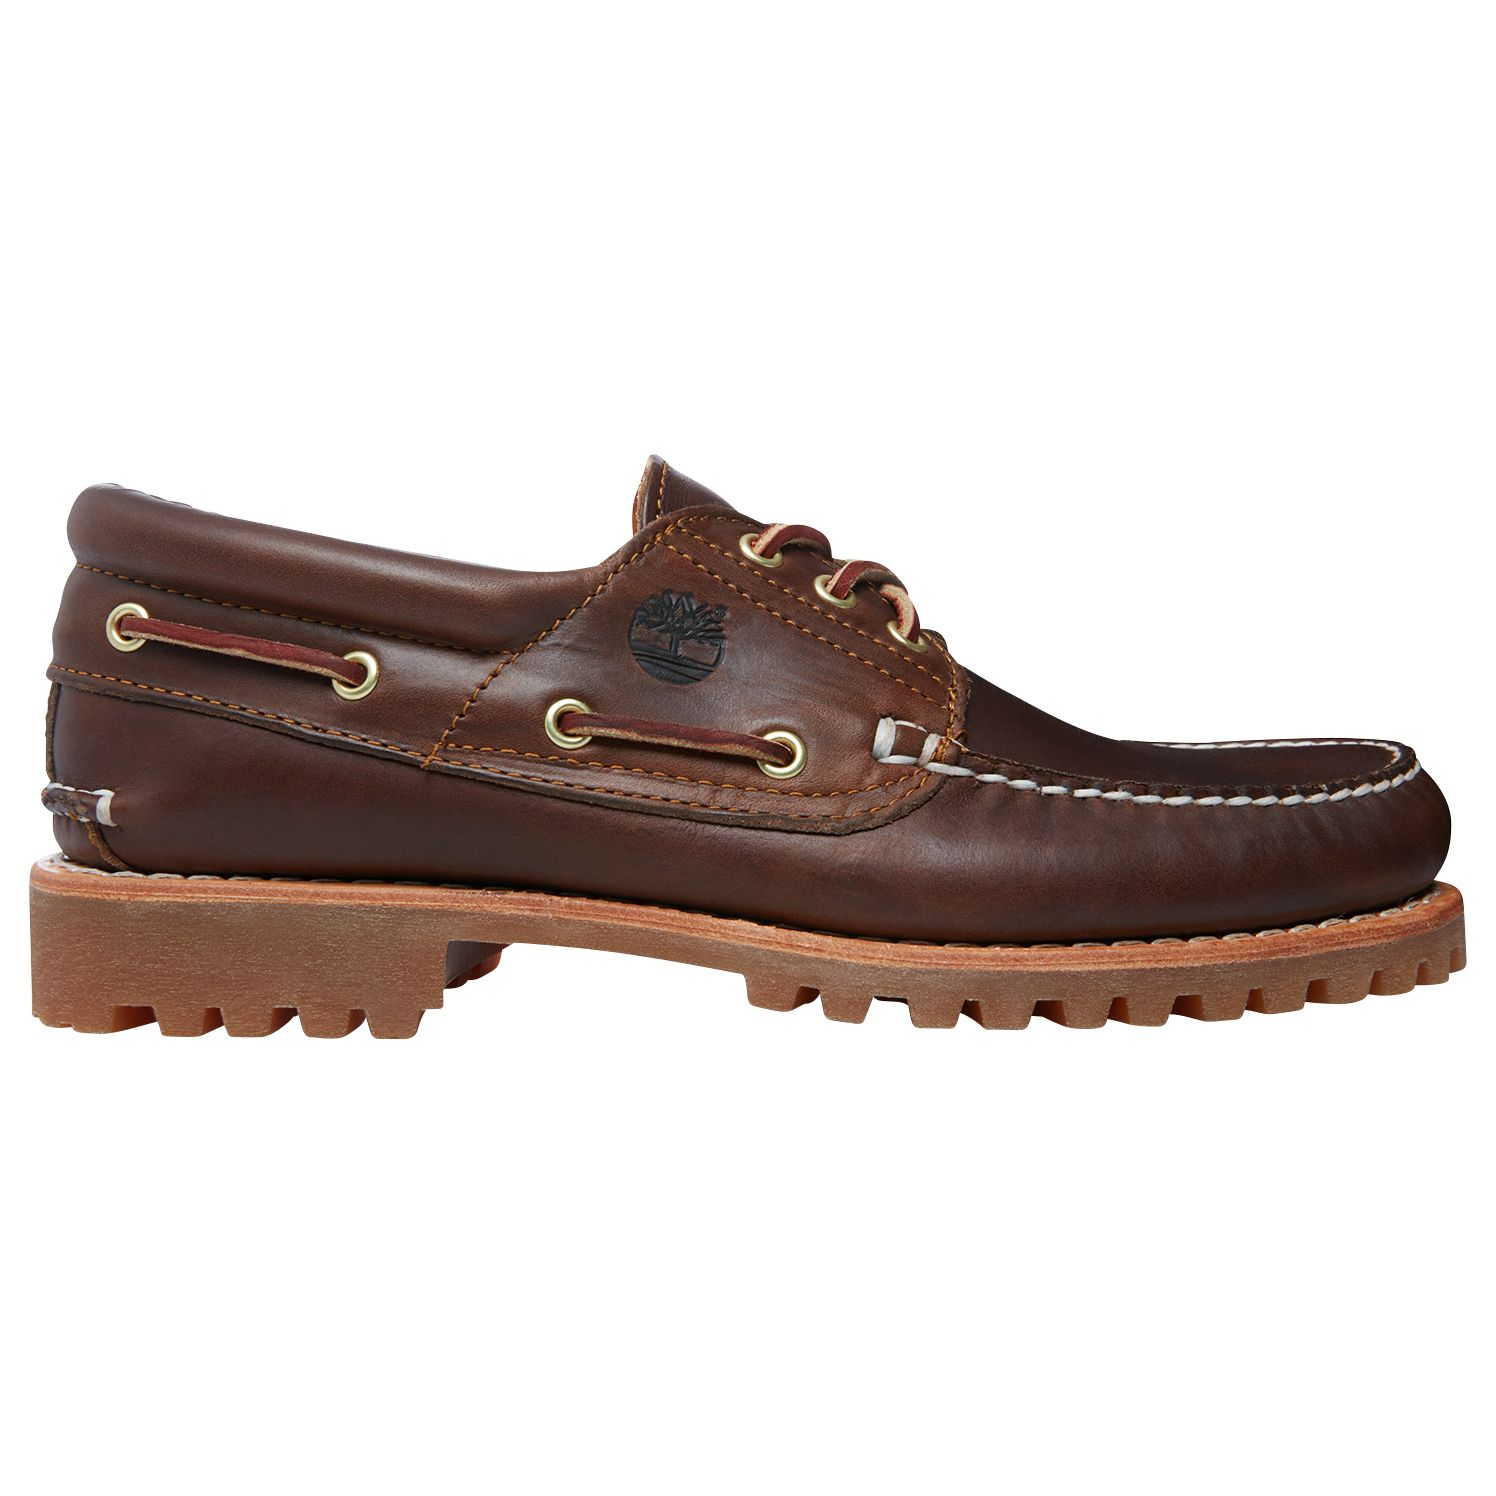 Timberland Timberland Handsewn Boat Shoes